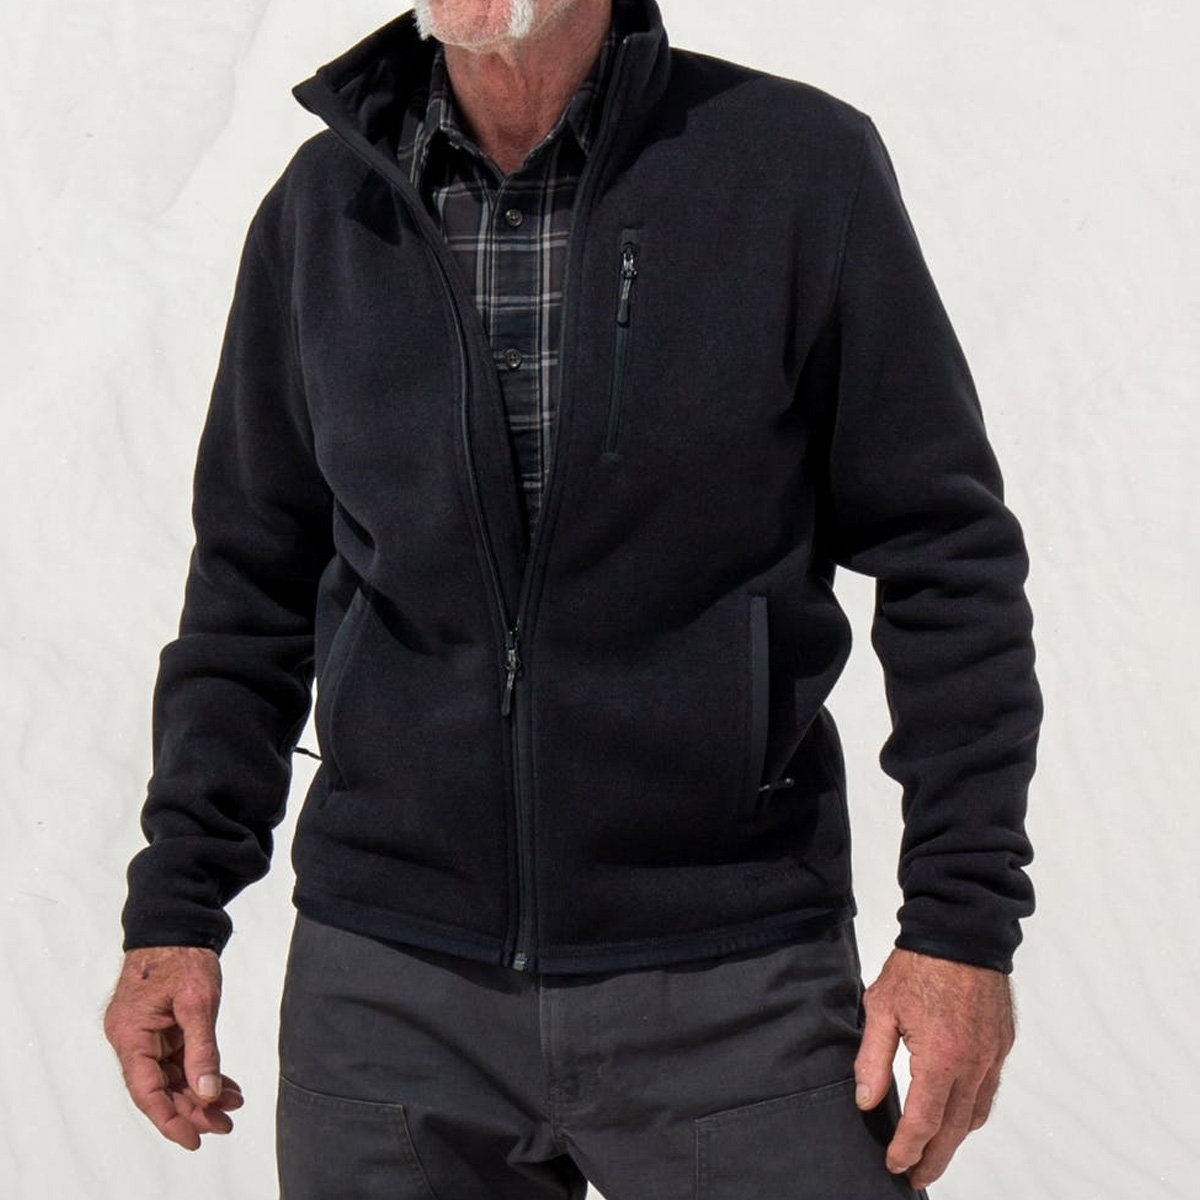 Filson Ridgeway Fleece Jacket Black, comfortable, lightweight quick-drying Polartec® fleece for use in extreme conditions